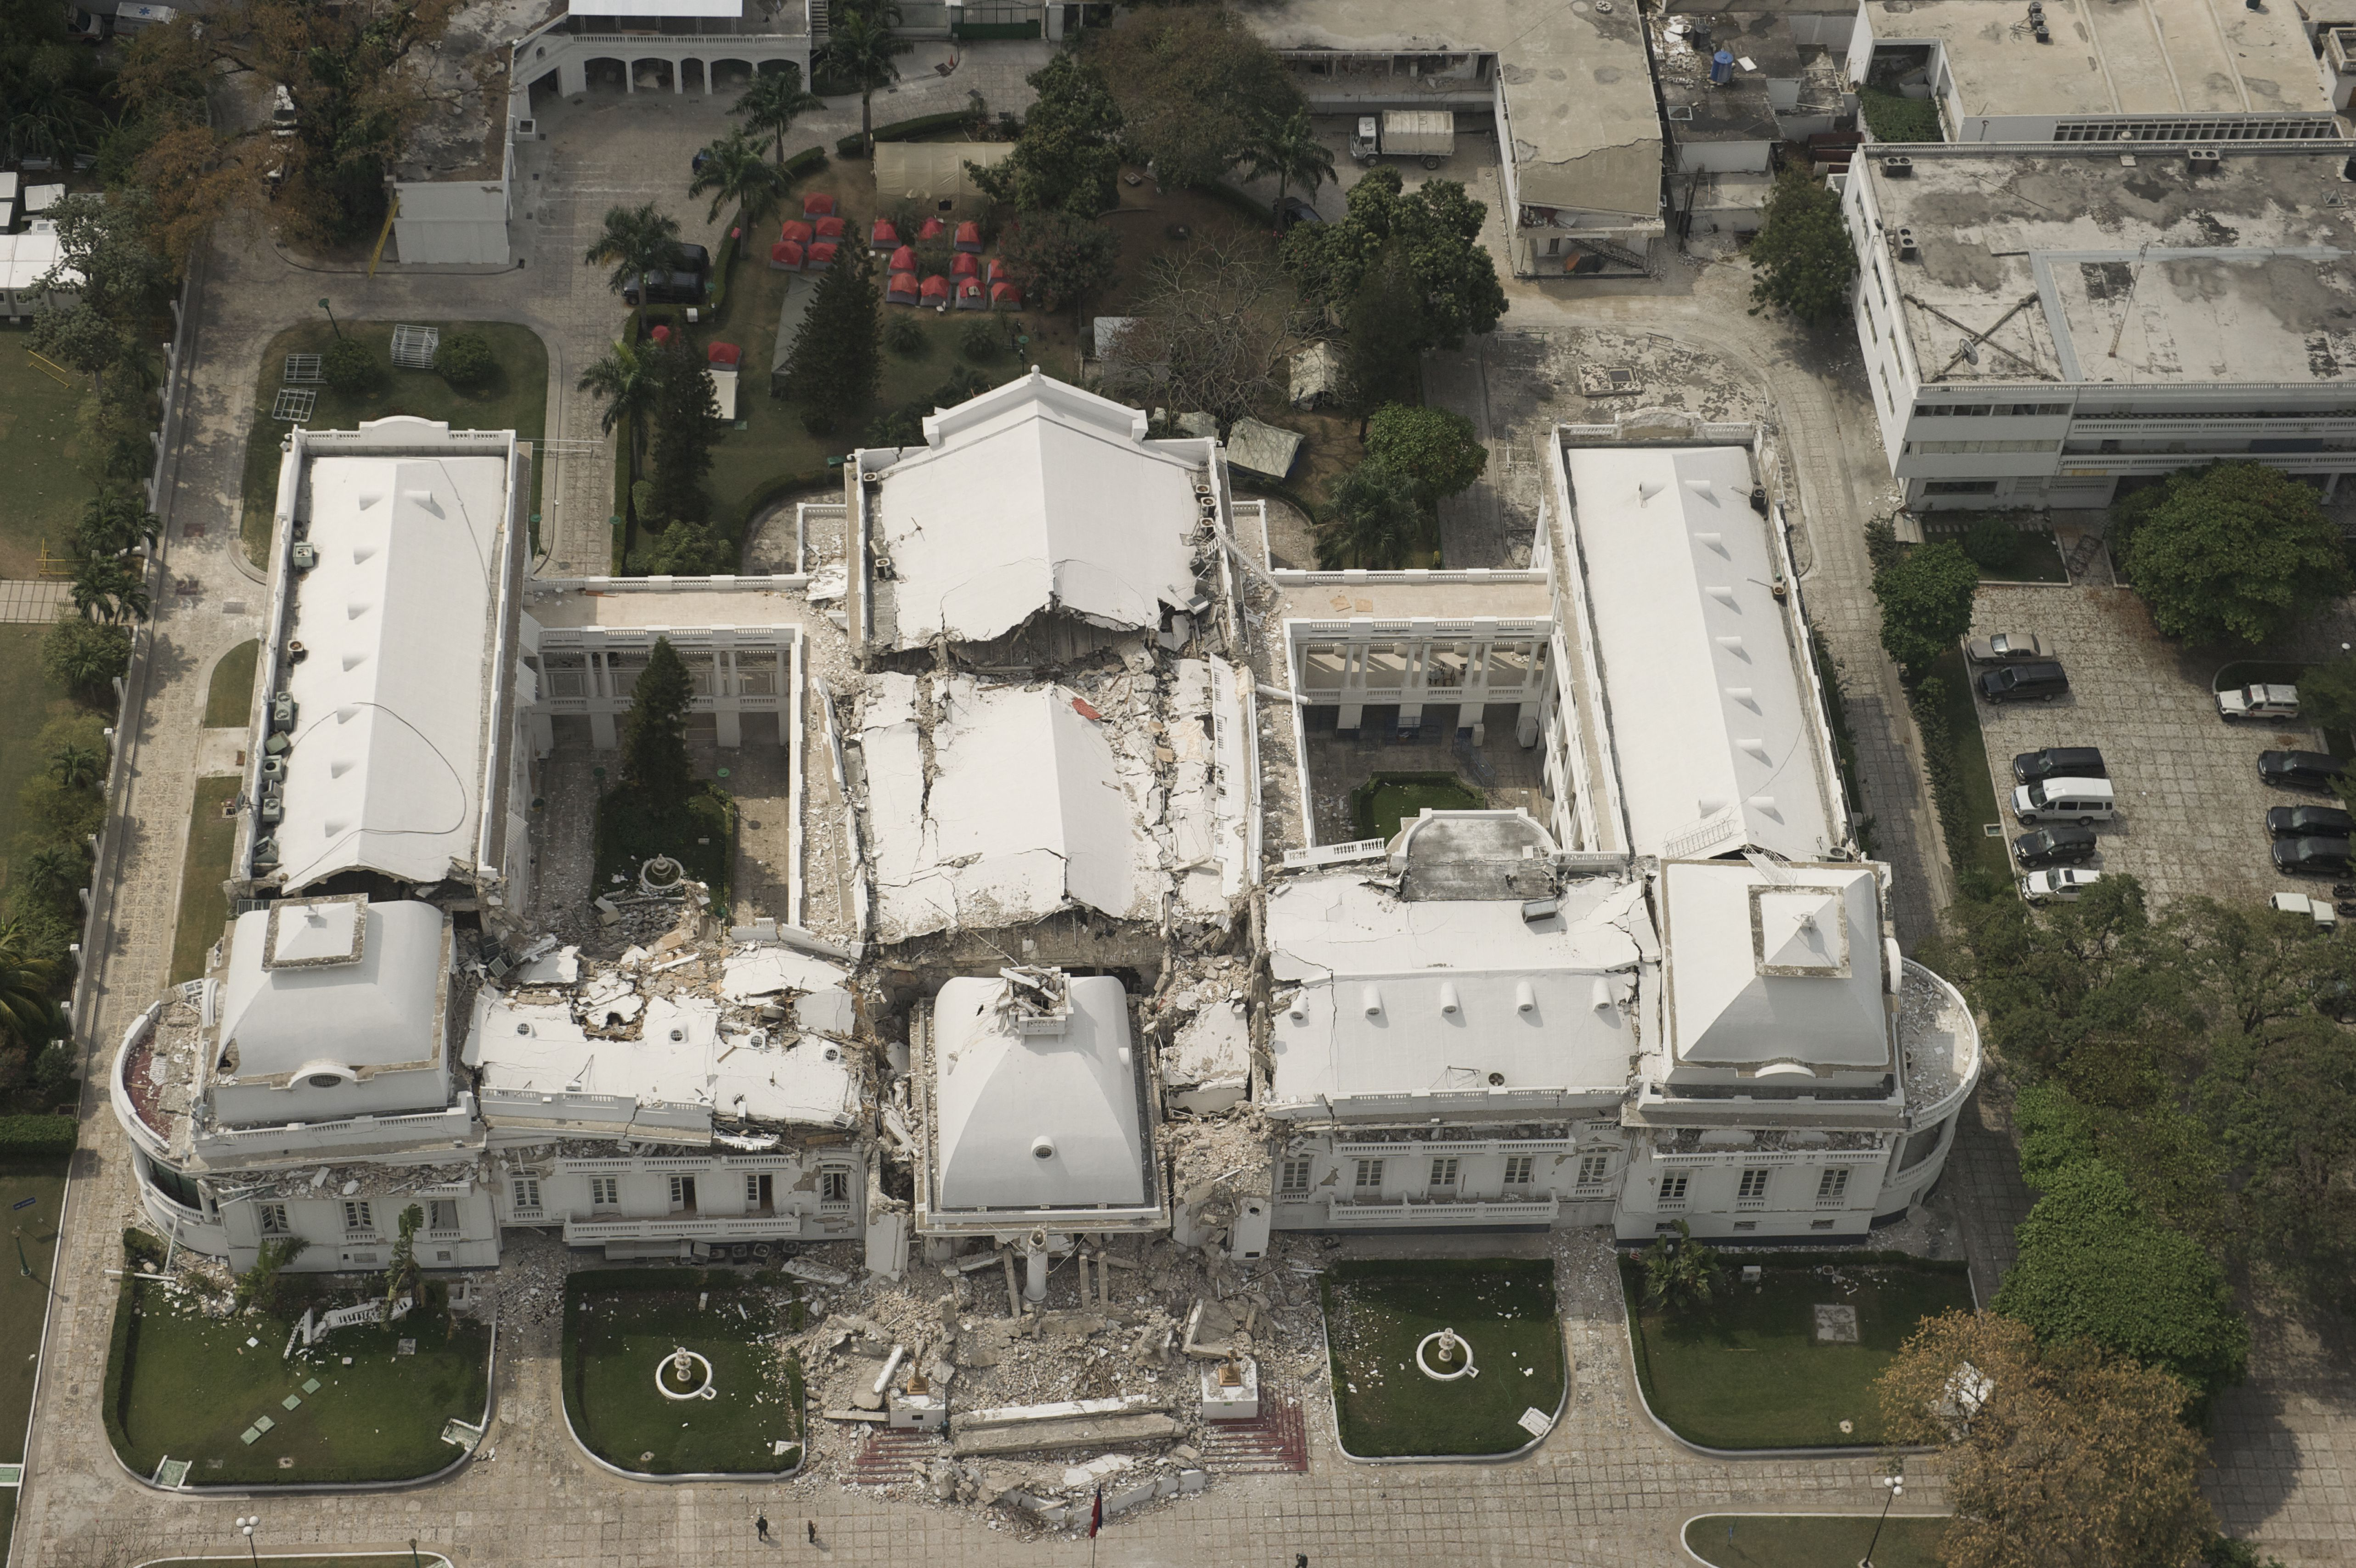 aerial view of presidential palace, roofs on all wings have colapsed onto spaces below